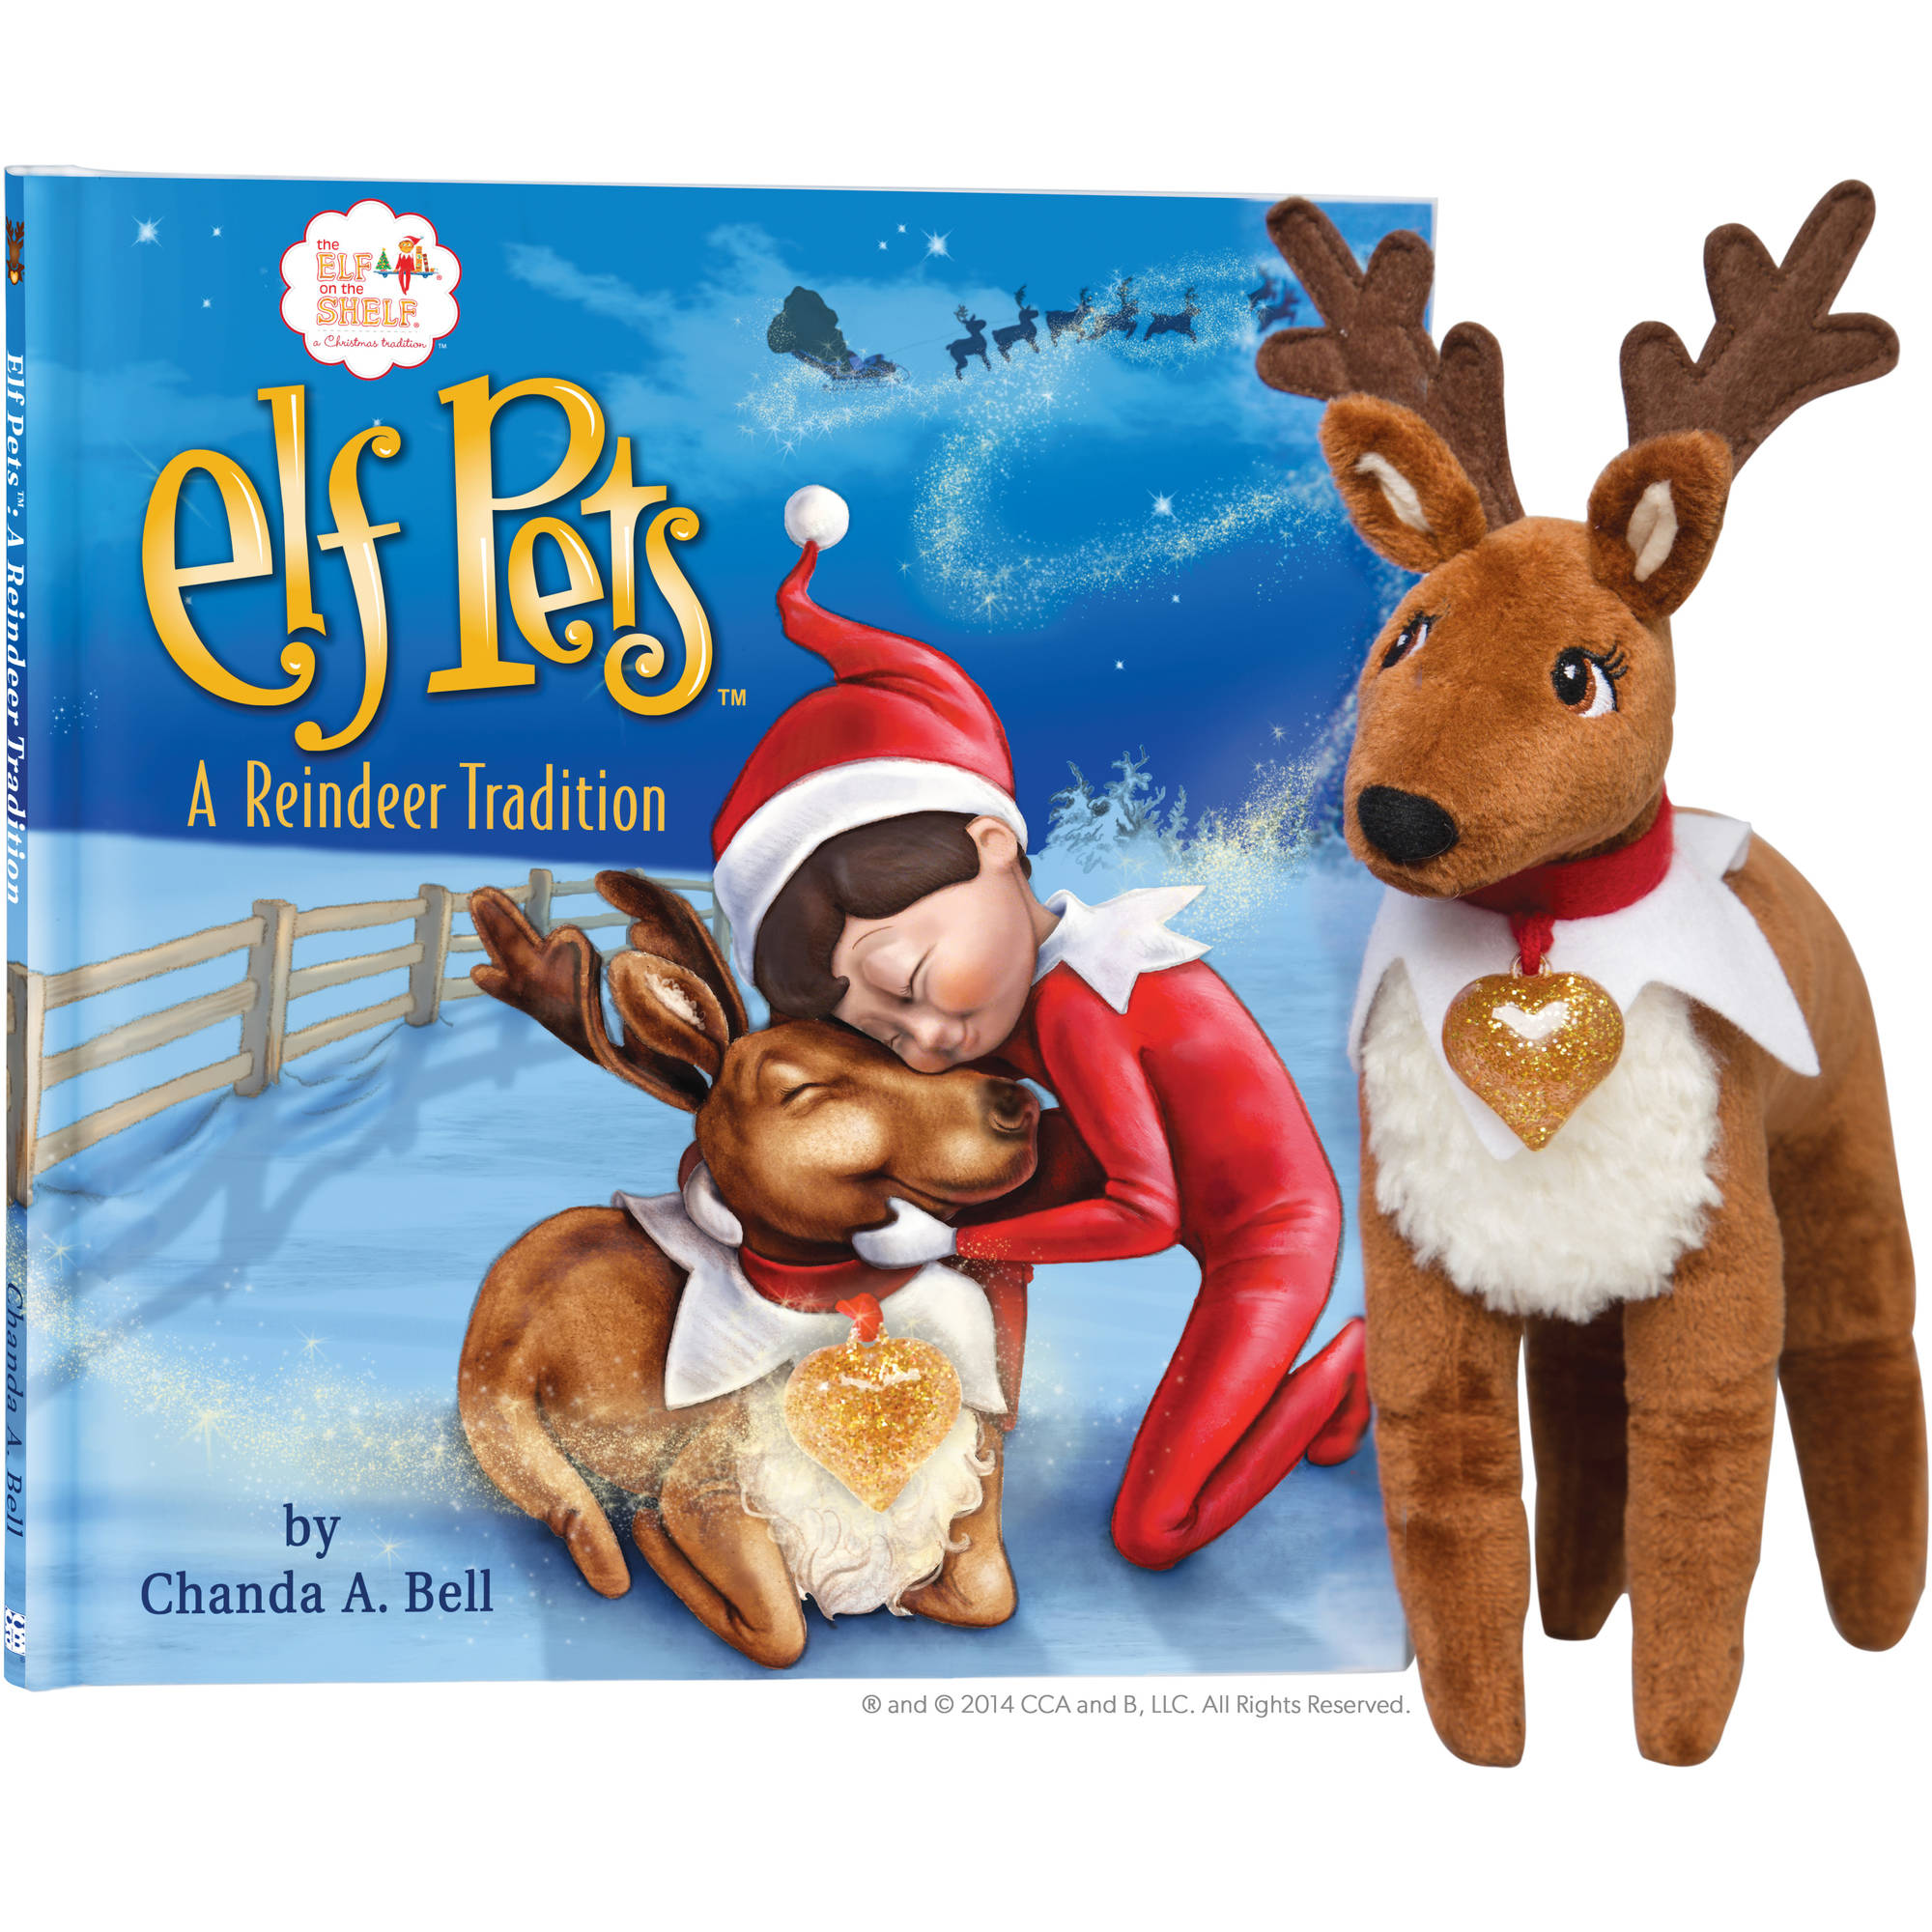 elf pets a reindeer tradition walmartcom - Elf On The Shelf Christmas Tradition